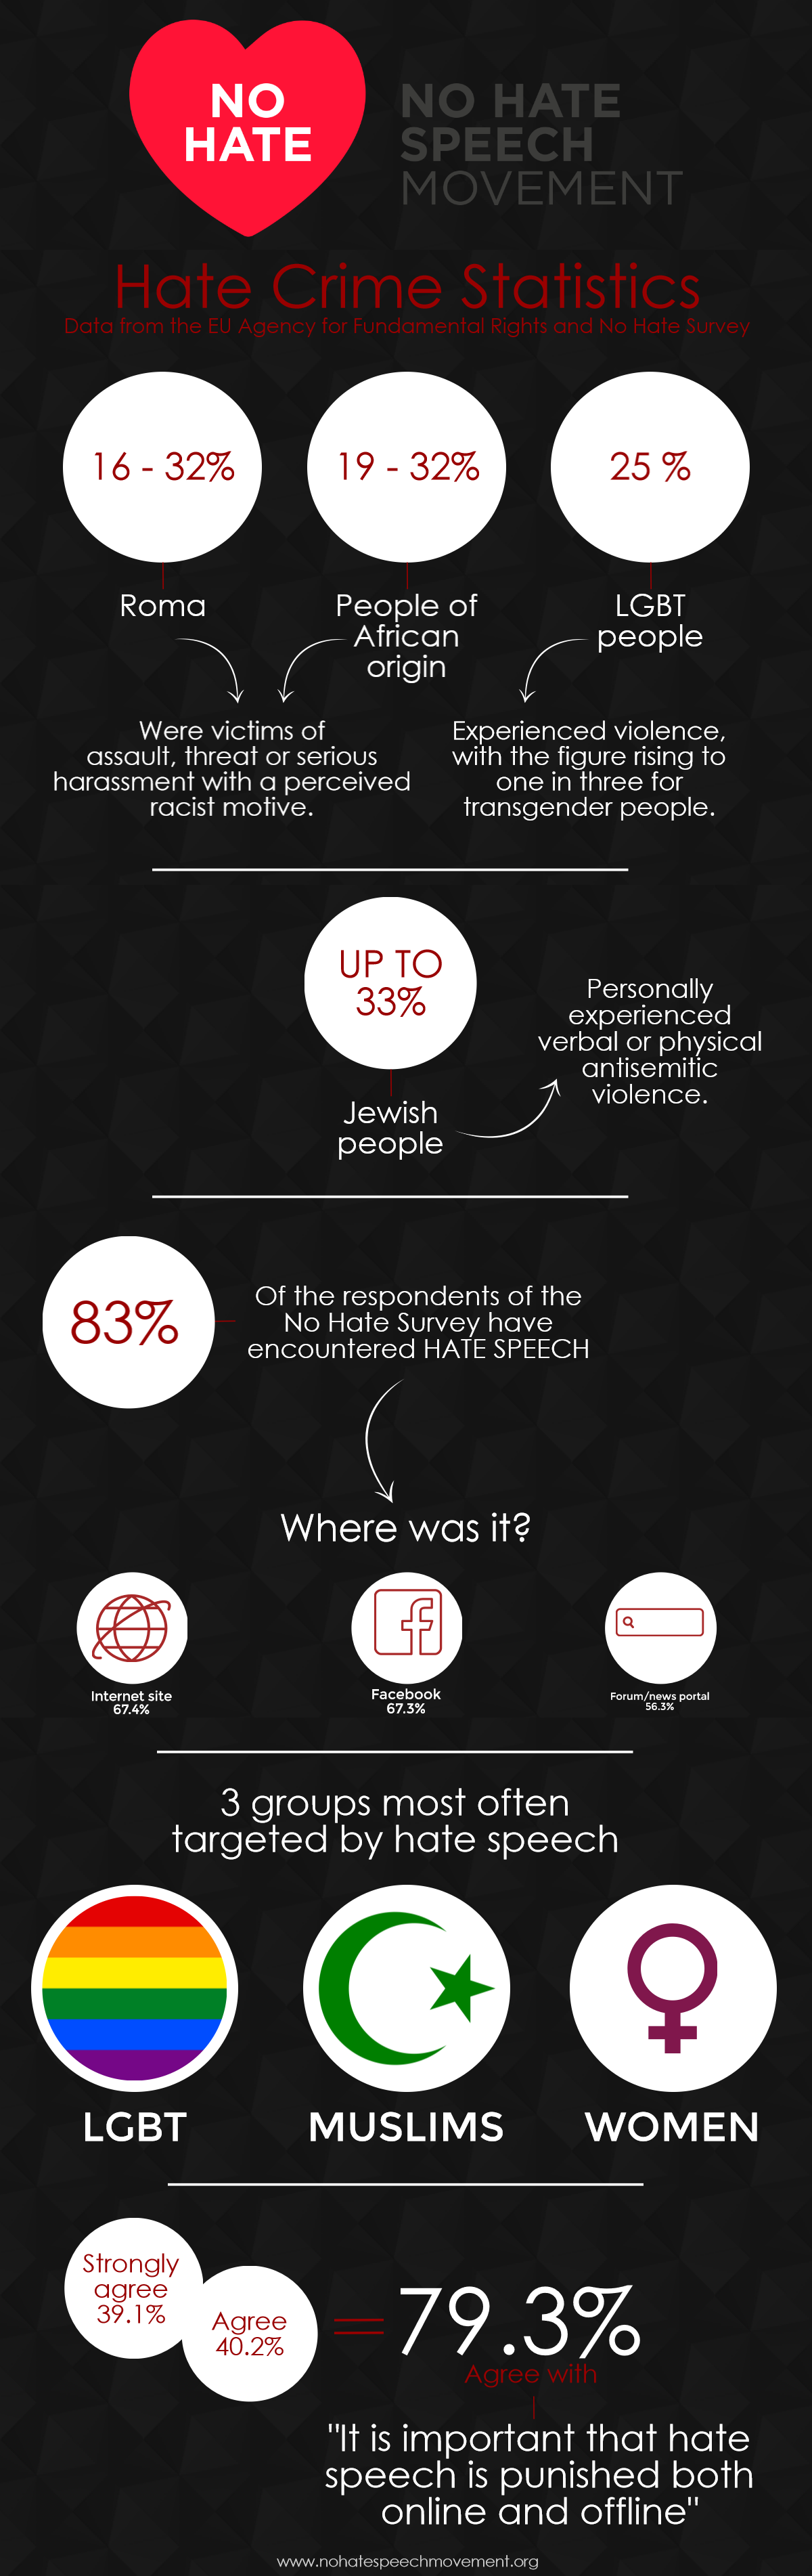 NHSM_hate_crime_infographic